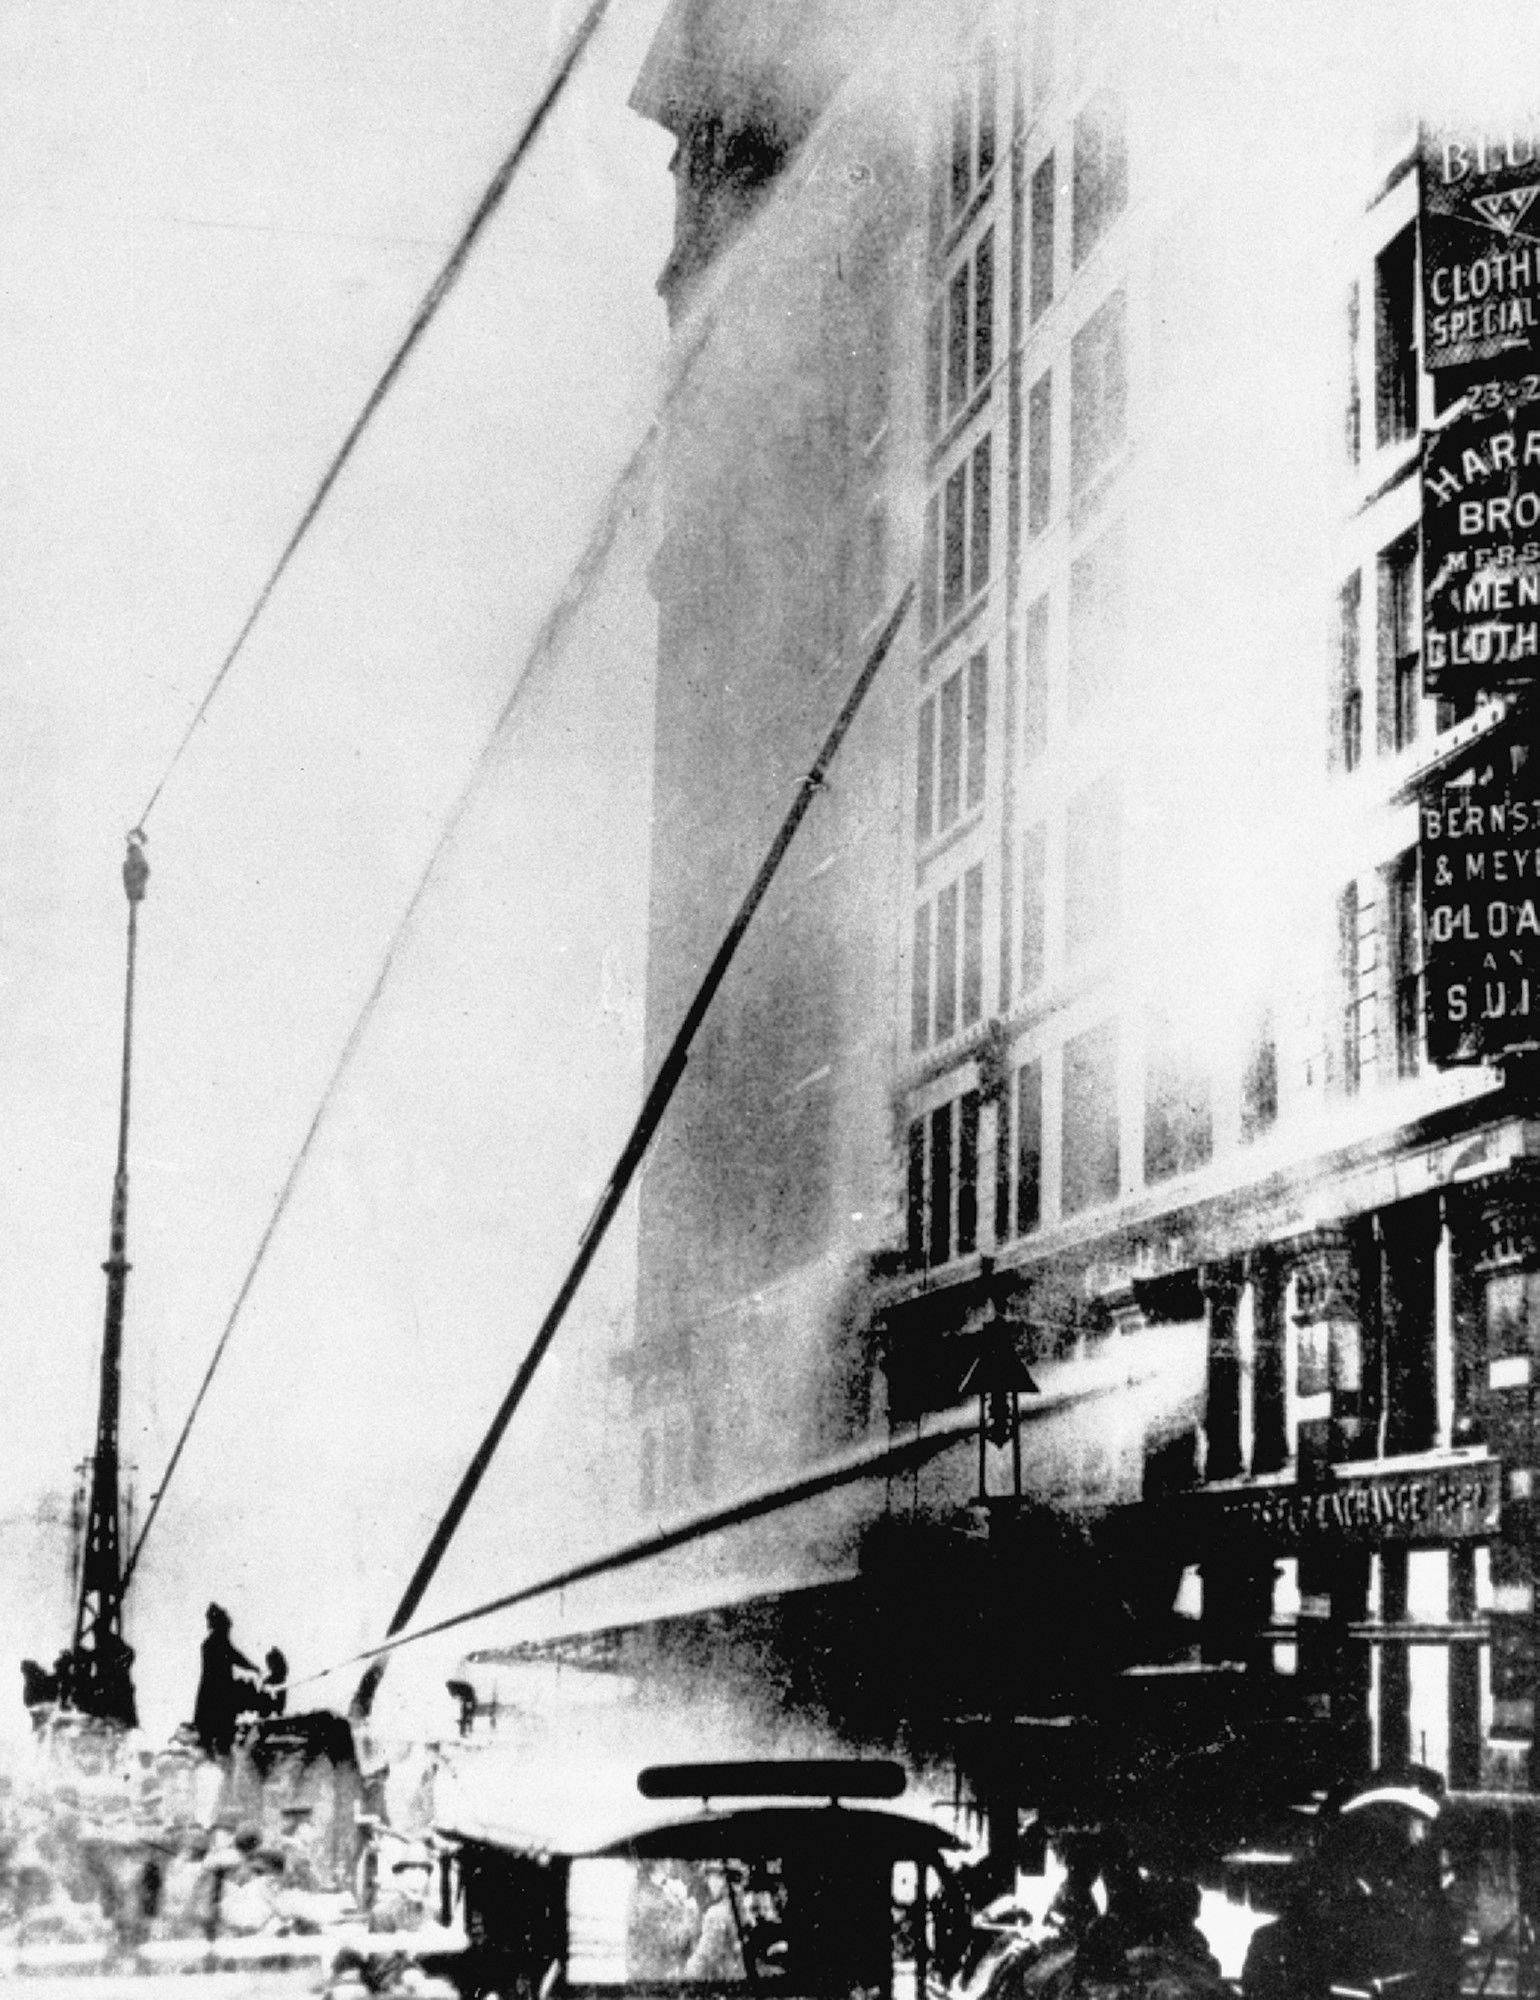 Firefighters work at the scene of the Triangle Shirtwaist Co. fire in the Asch Building on New York's Washington Place in 1911. The fire killed 146 young girls and women and triggered widespread labor reforms.